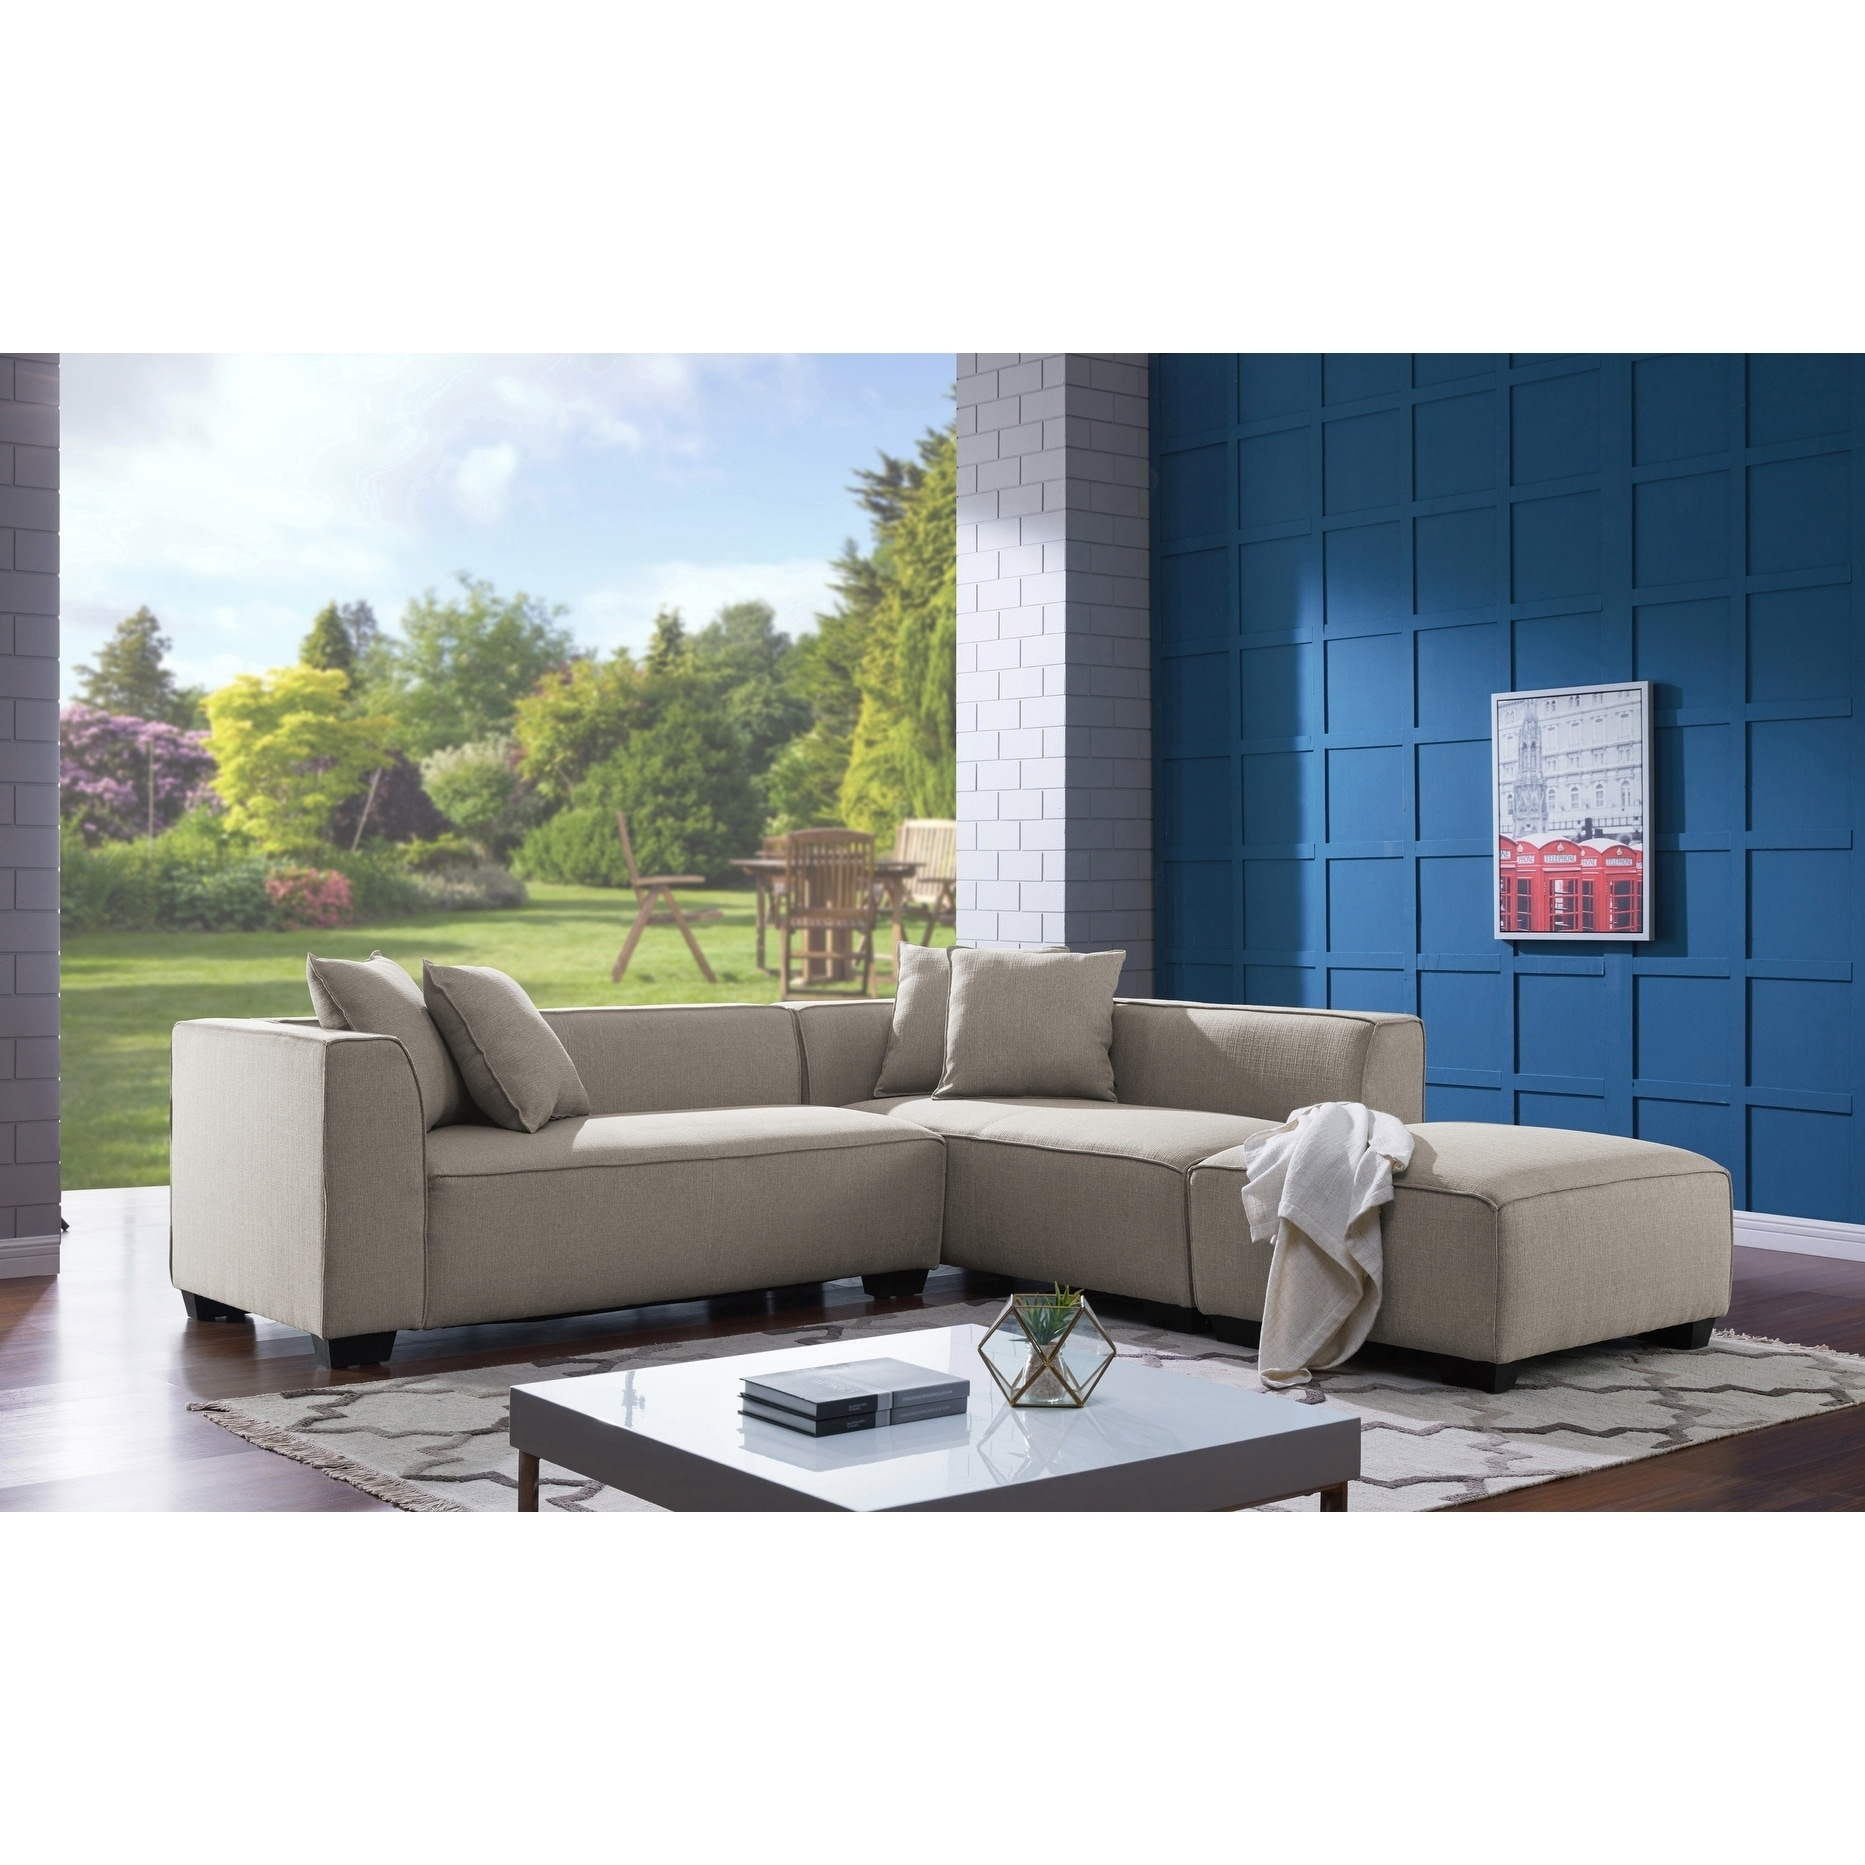 Cool Handy Living Phoenix Barley Tan Sectional Sofa With Ottoman Spiritservingveterans Wood Chair Design Ideas Spiritservingveteransorg